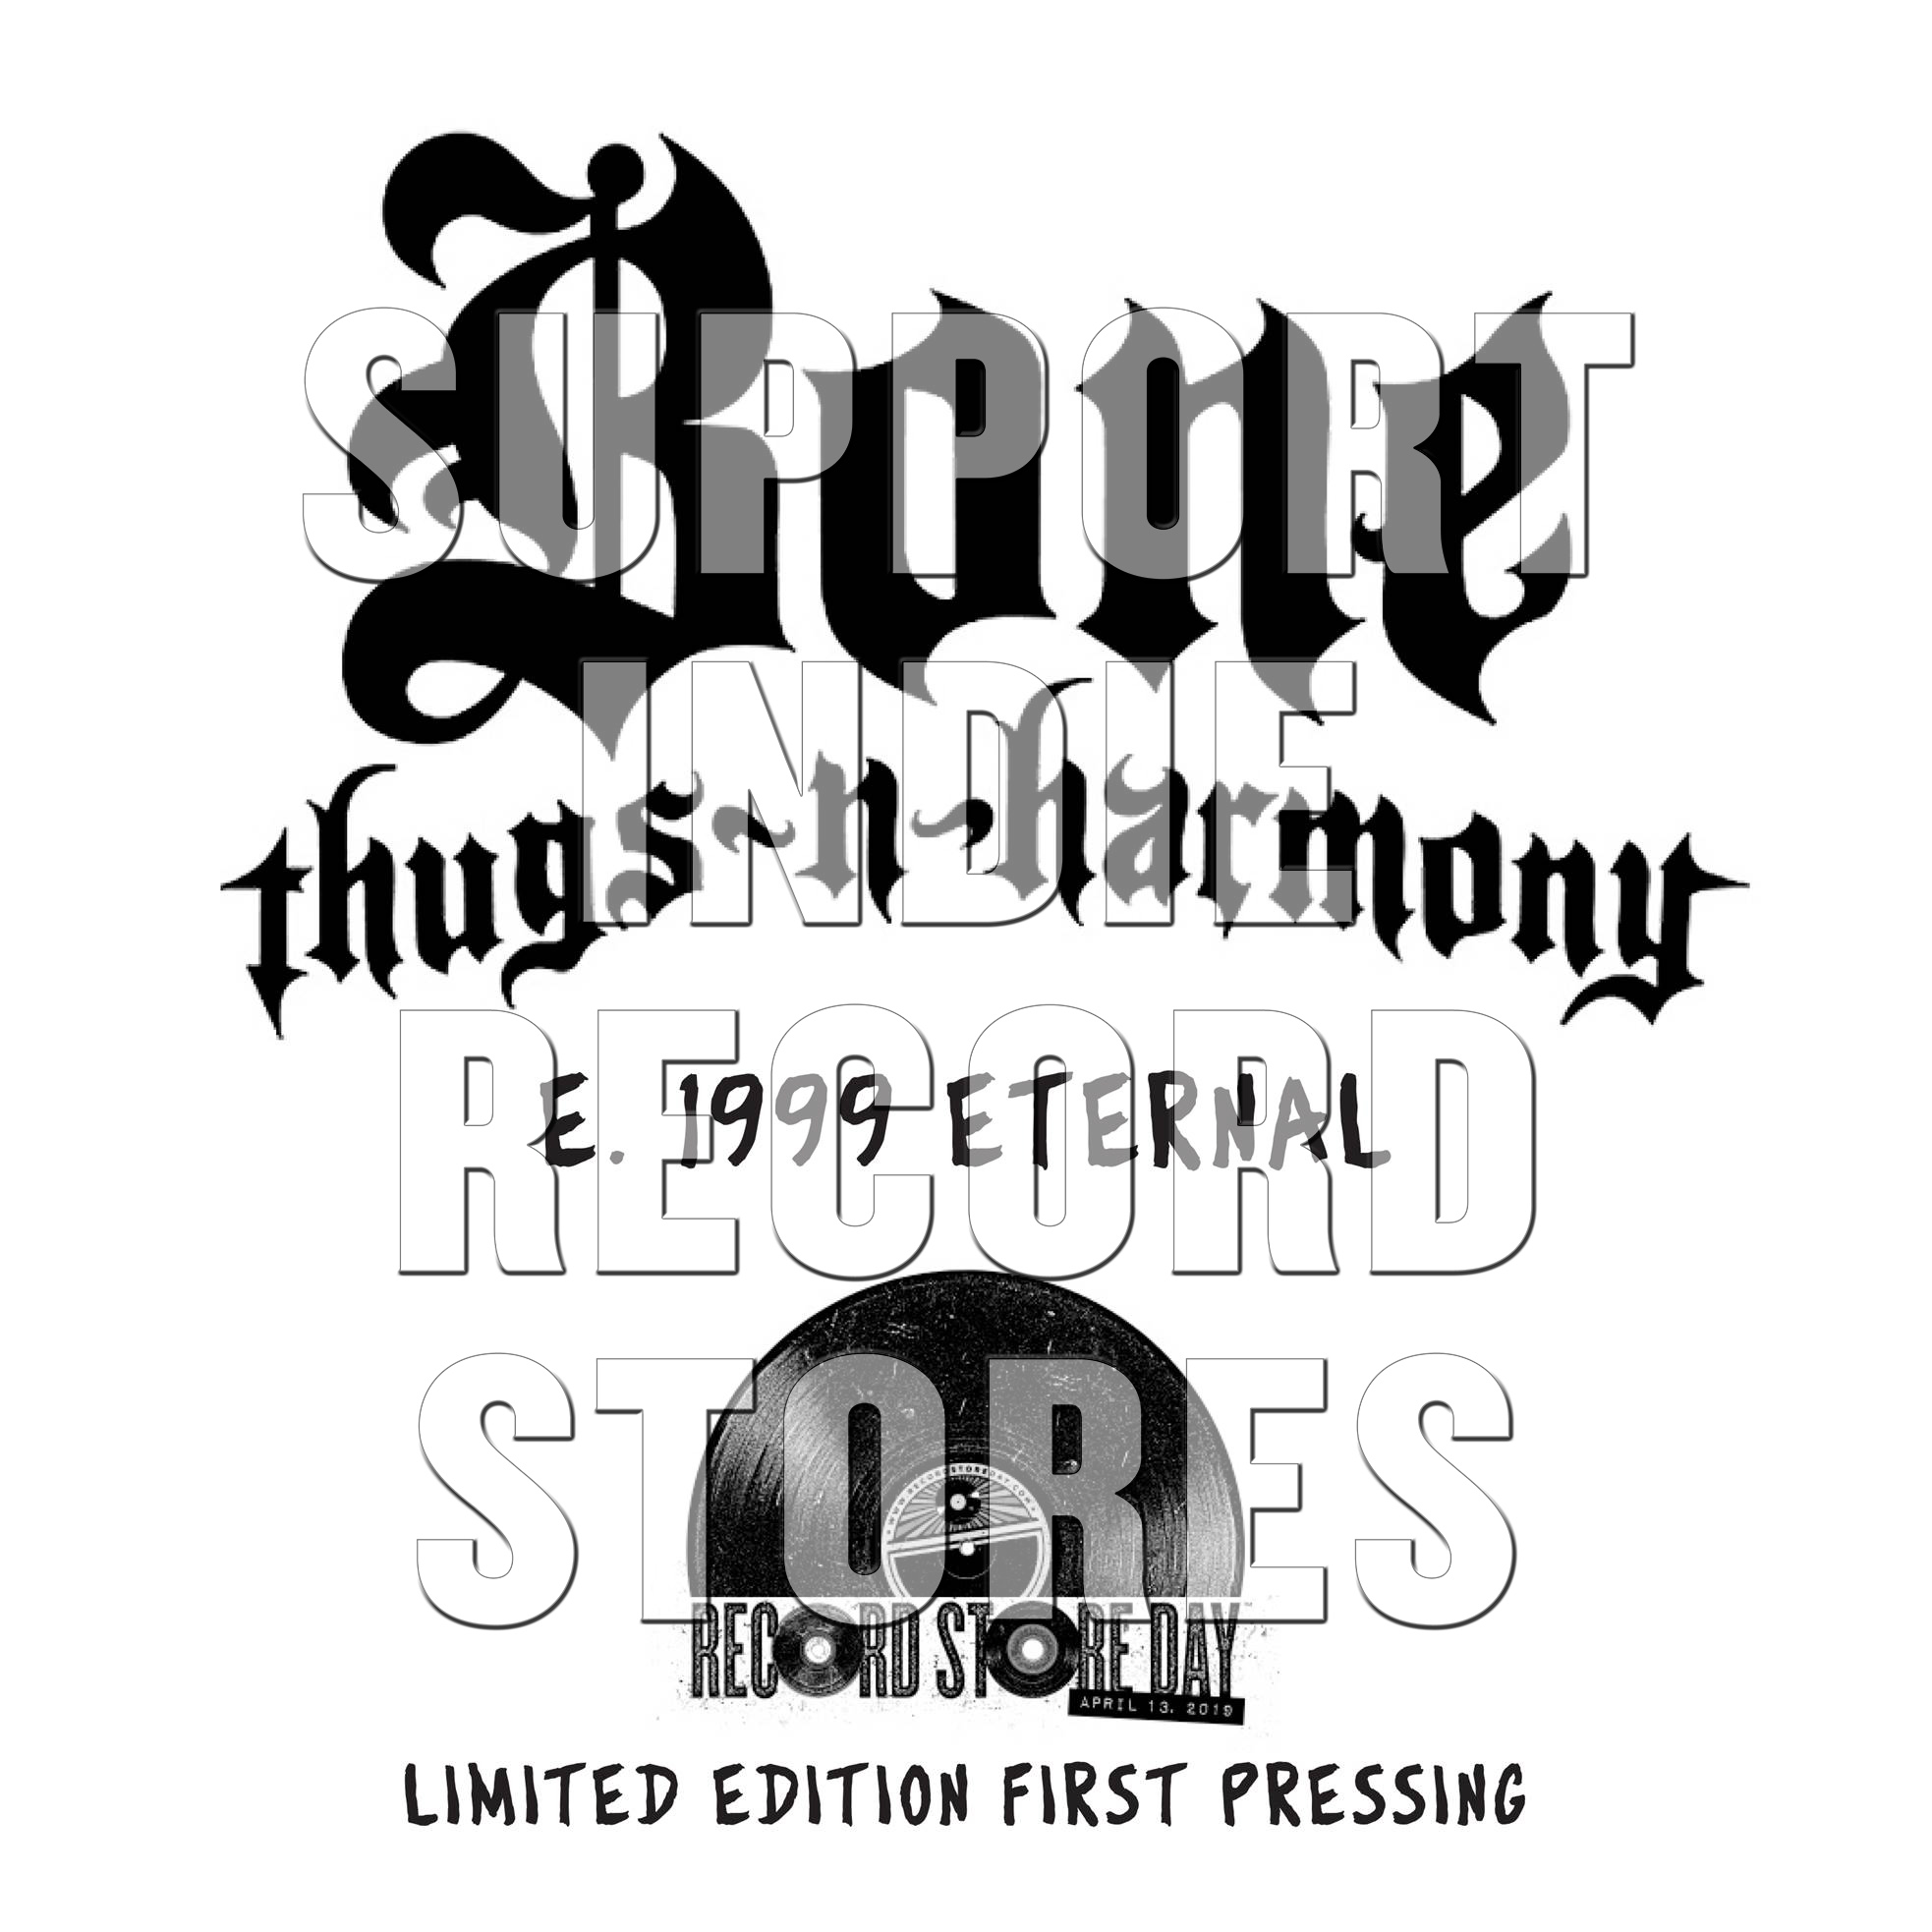 Bone Thugs-N-Harmony - E. 1999 Eternal  [RSD 2019]